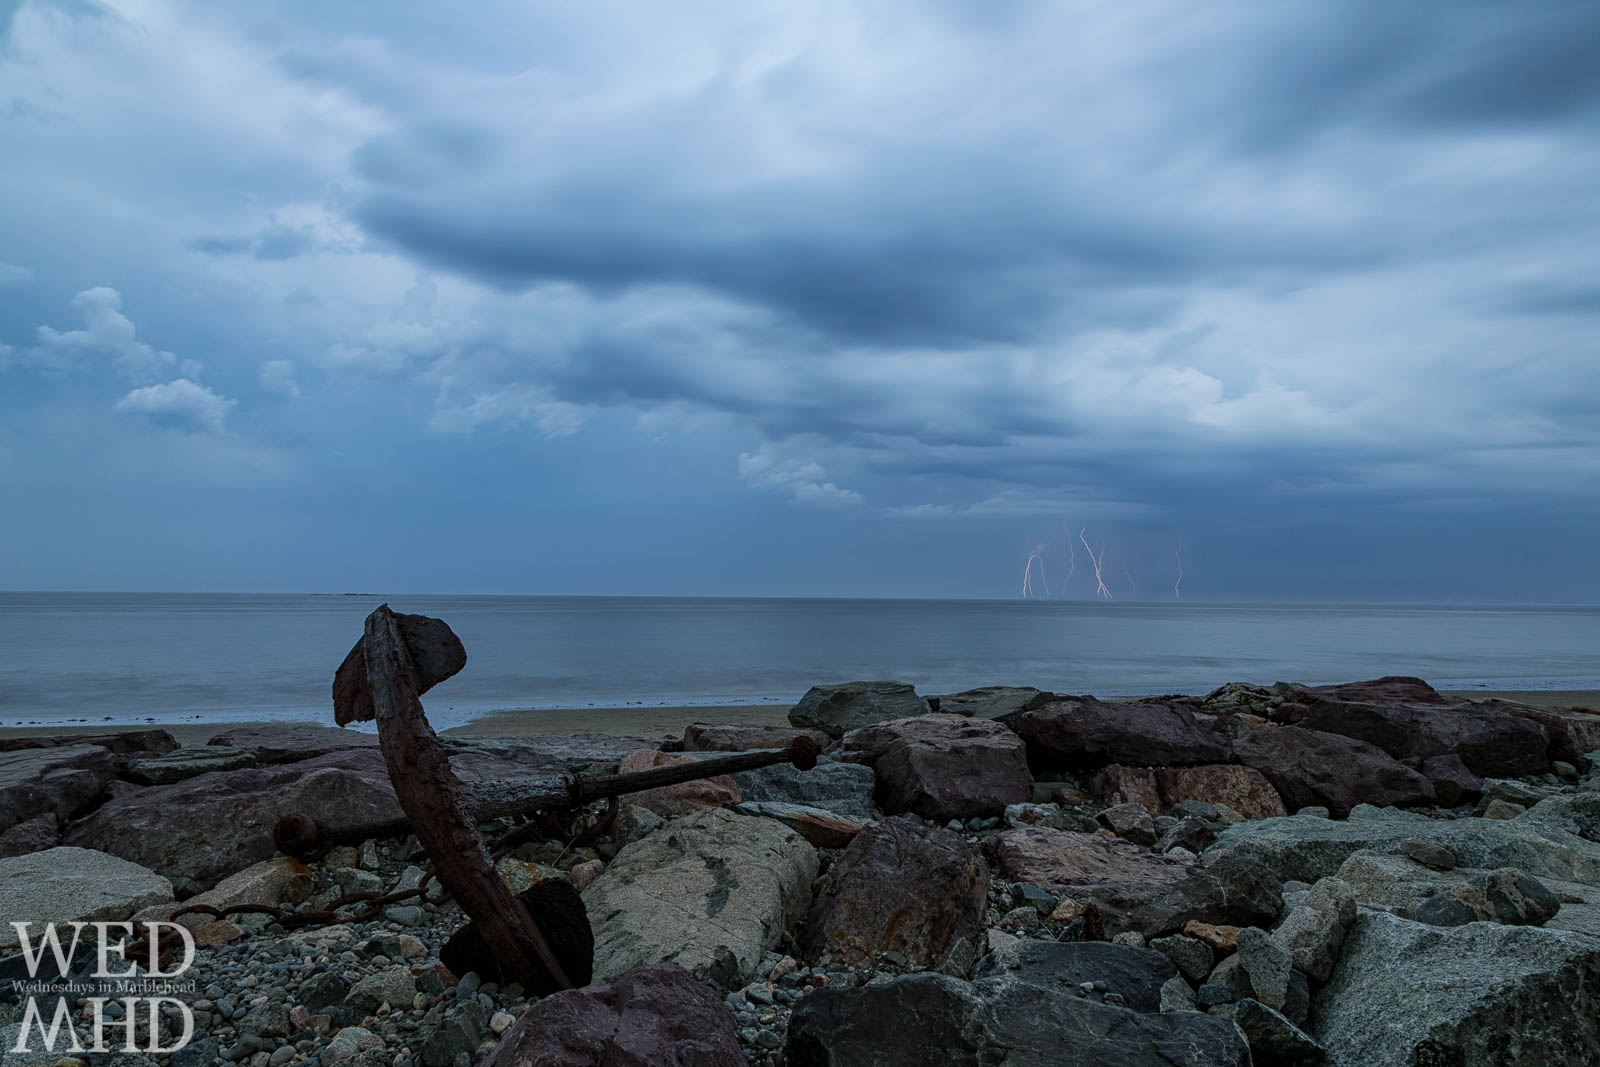 A cluster of lightning bolts seen off the shore at Preston Beach with the familiary anchor nestled among rocks